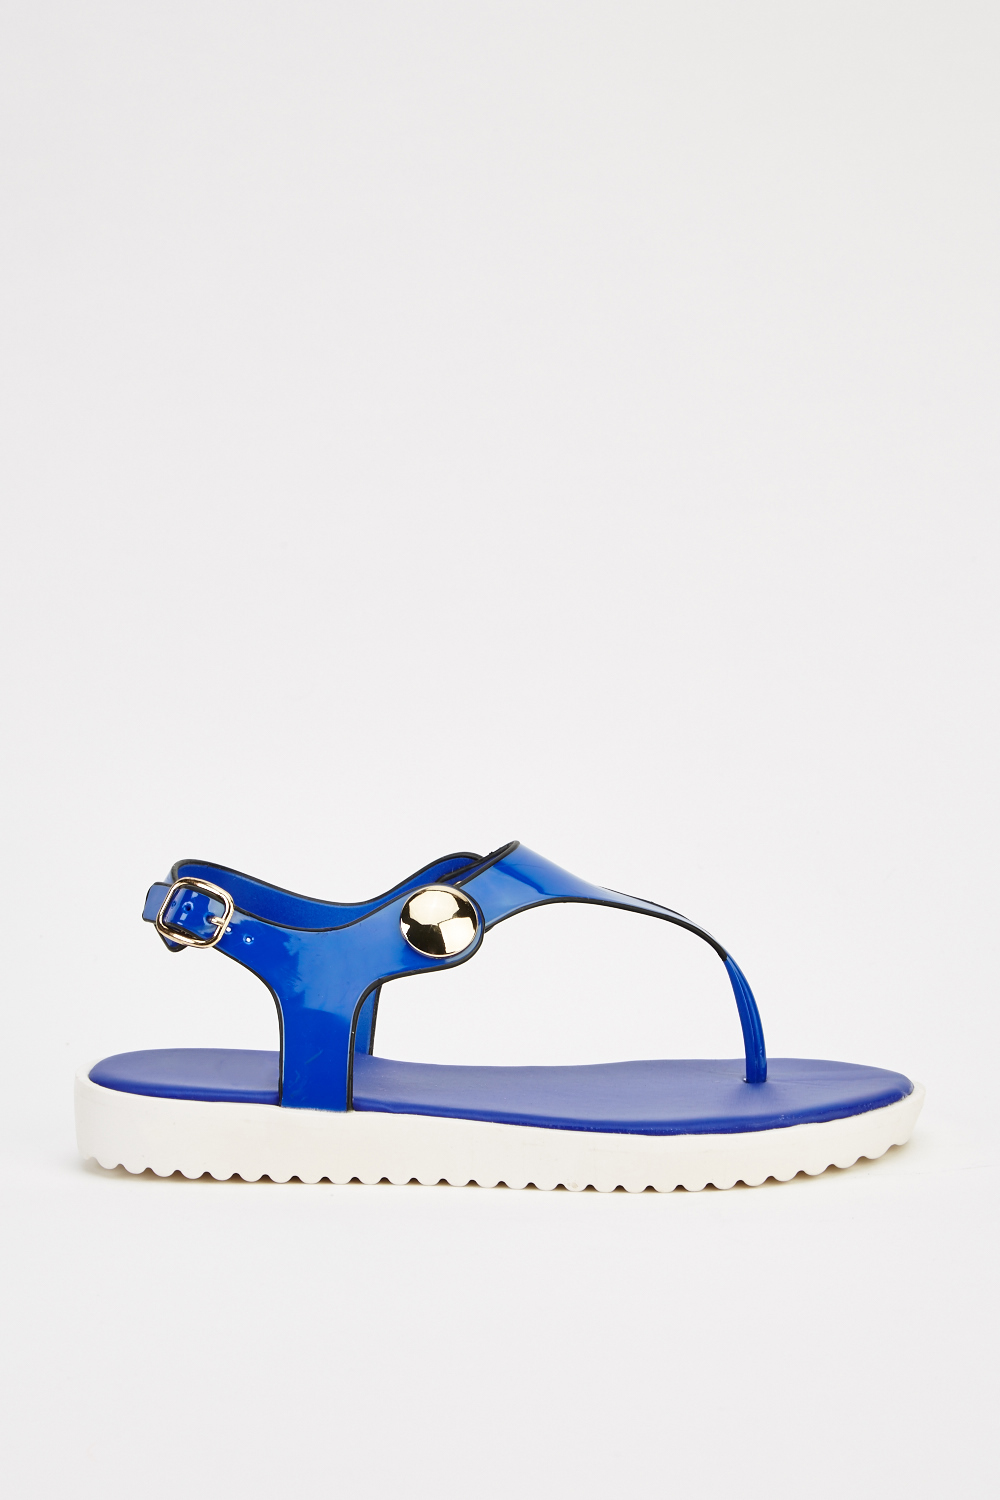 58a623c73 Jelly Flip Flop Sandals - Navy - Just £5